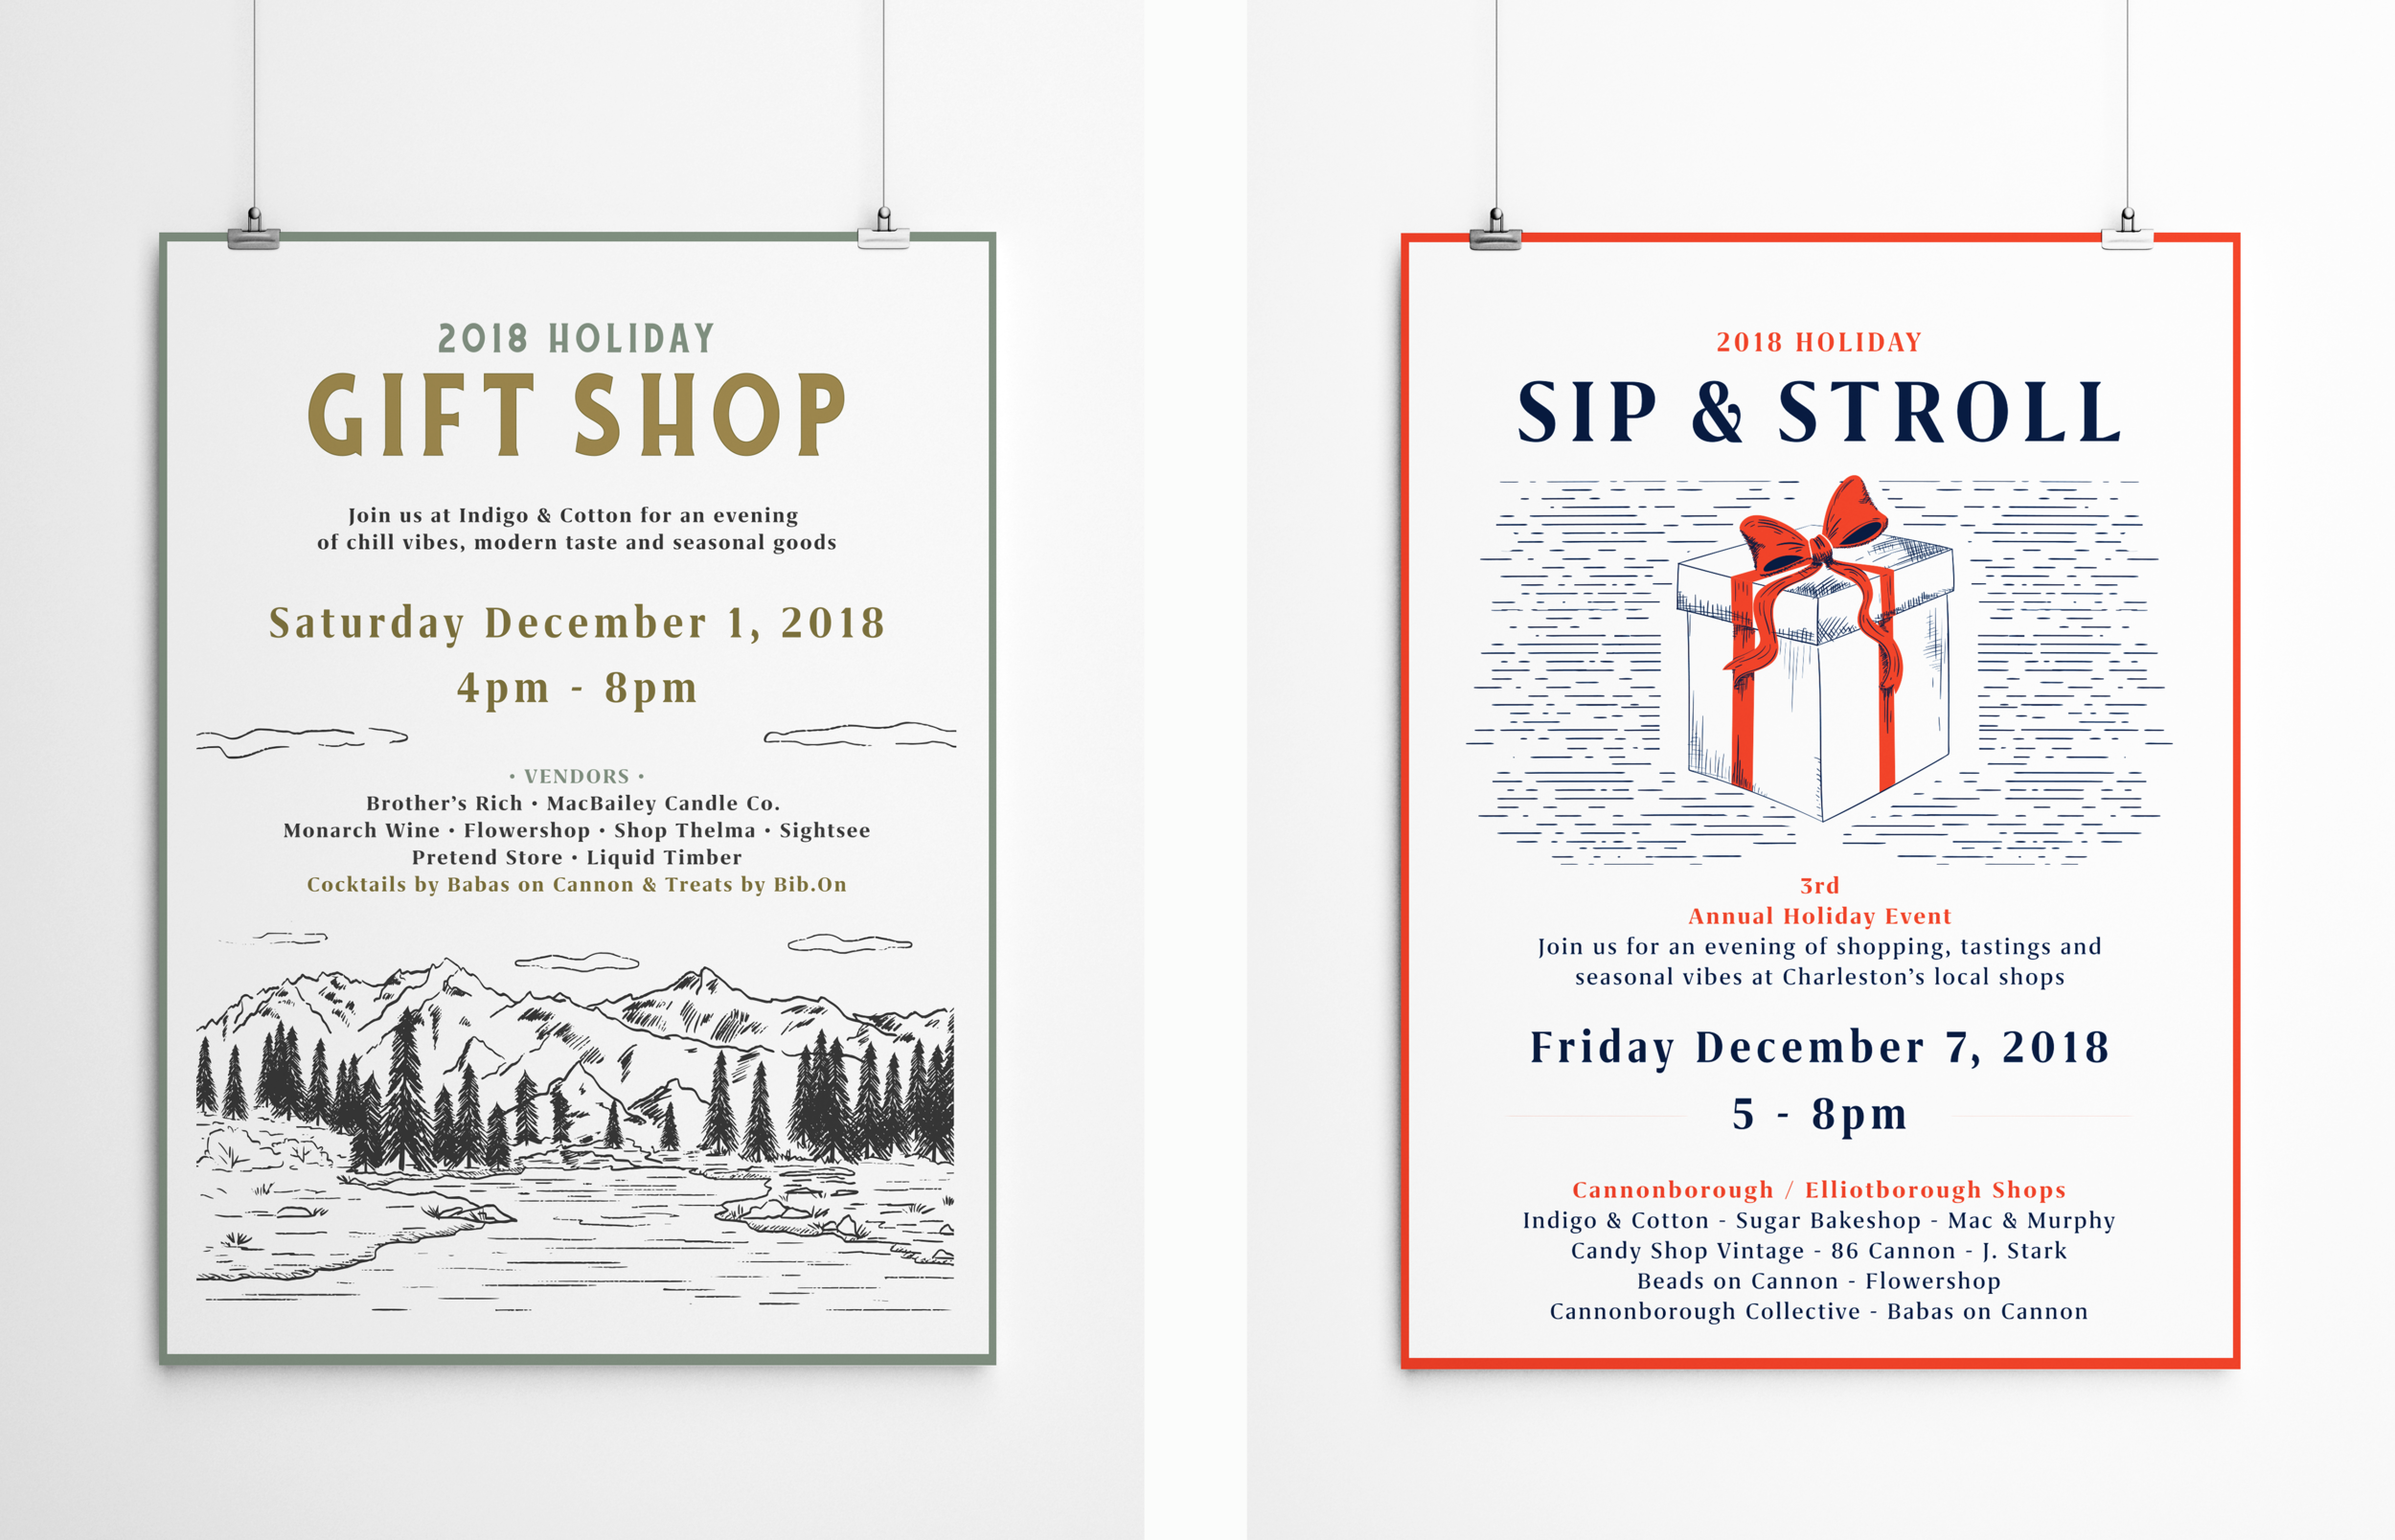 Posters Commissioned by Indigo & Cotton for Two Holiday Events